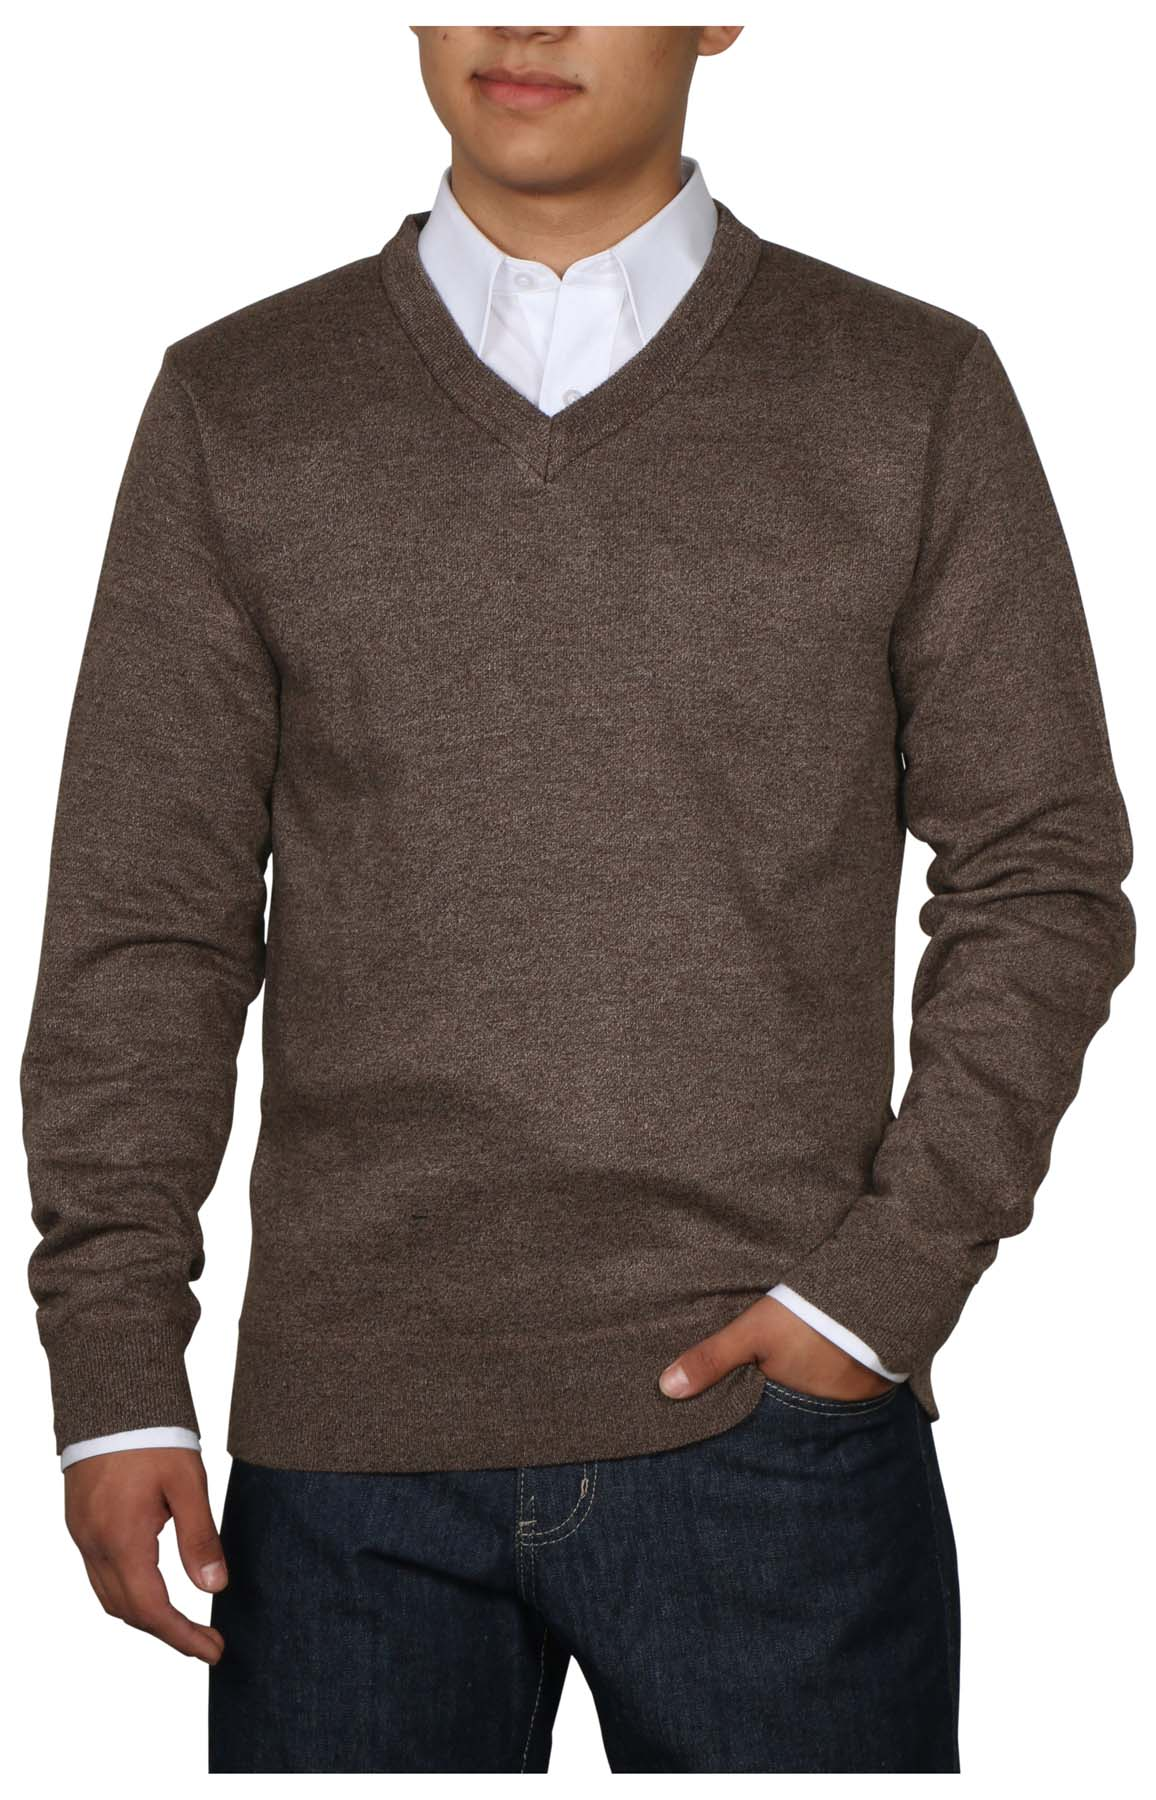 True Rock Men's Lightweight Long Sleeve V-Neck Sweater | eBay